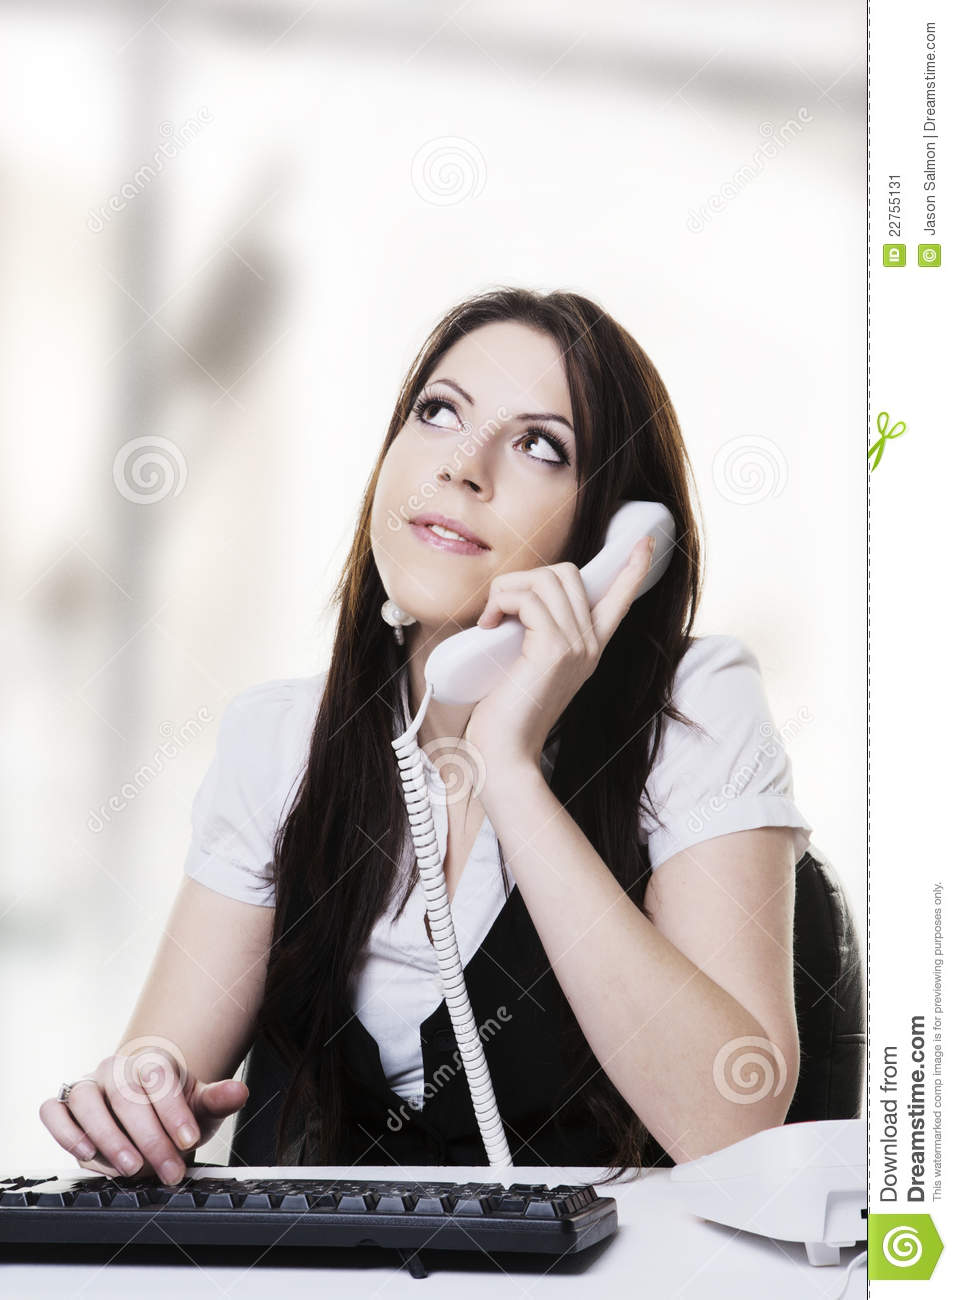 how to talk to a girl on the phone yahoo